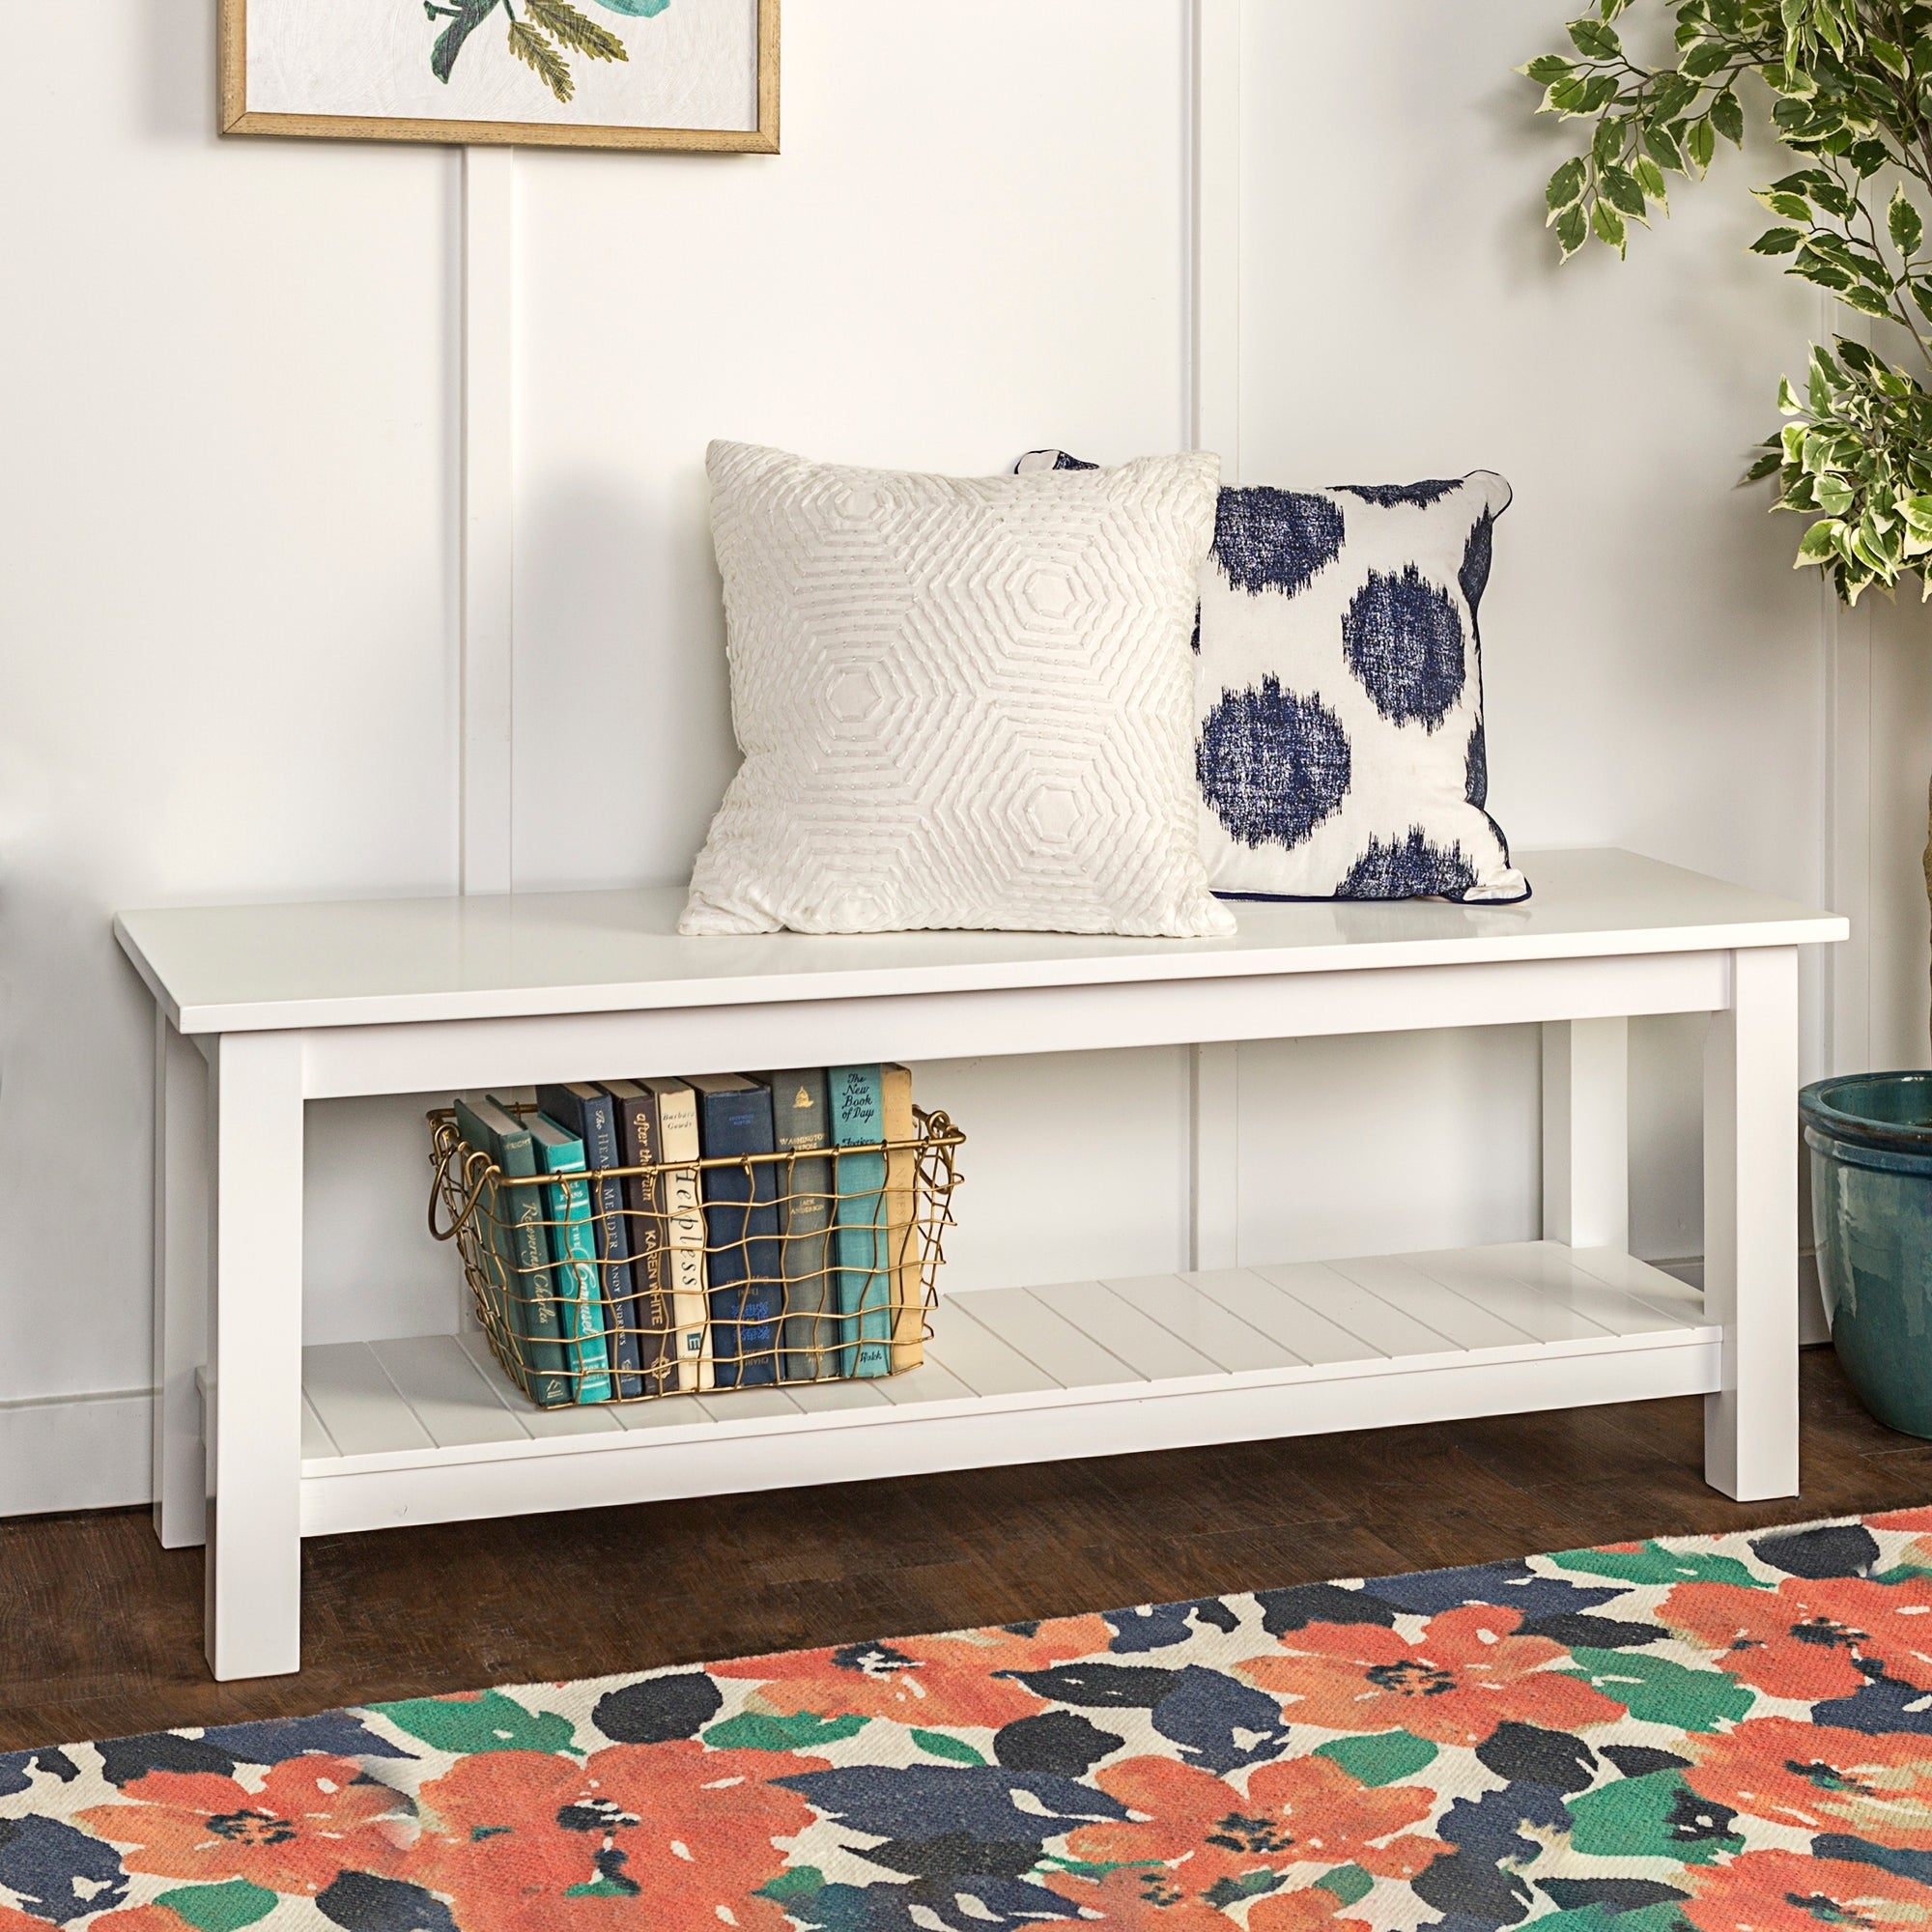 fur sleeper art today colorful book cornaer glass rugs polkadot sisal decor console sofas corner creative floor sectional size with frame wooden modern full white coffee design jars living behind of paint lamp blue pattern wall beautiful shelf table sand couch pillows sofa picture futon room